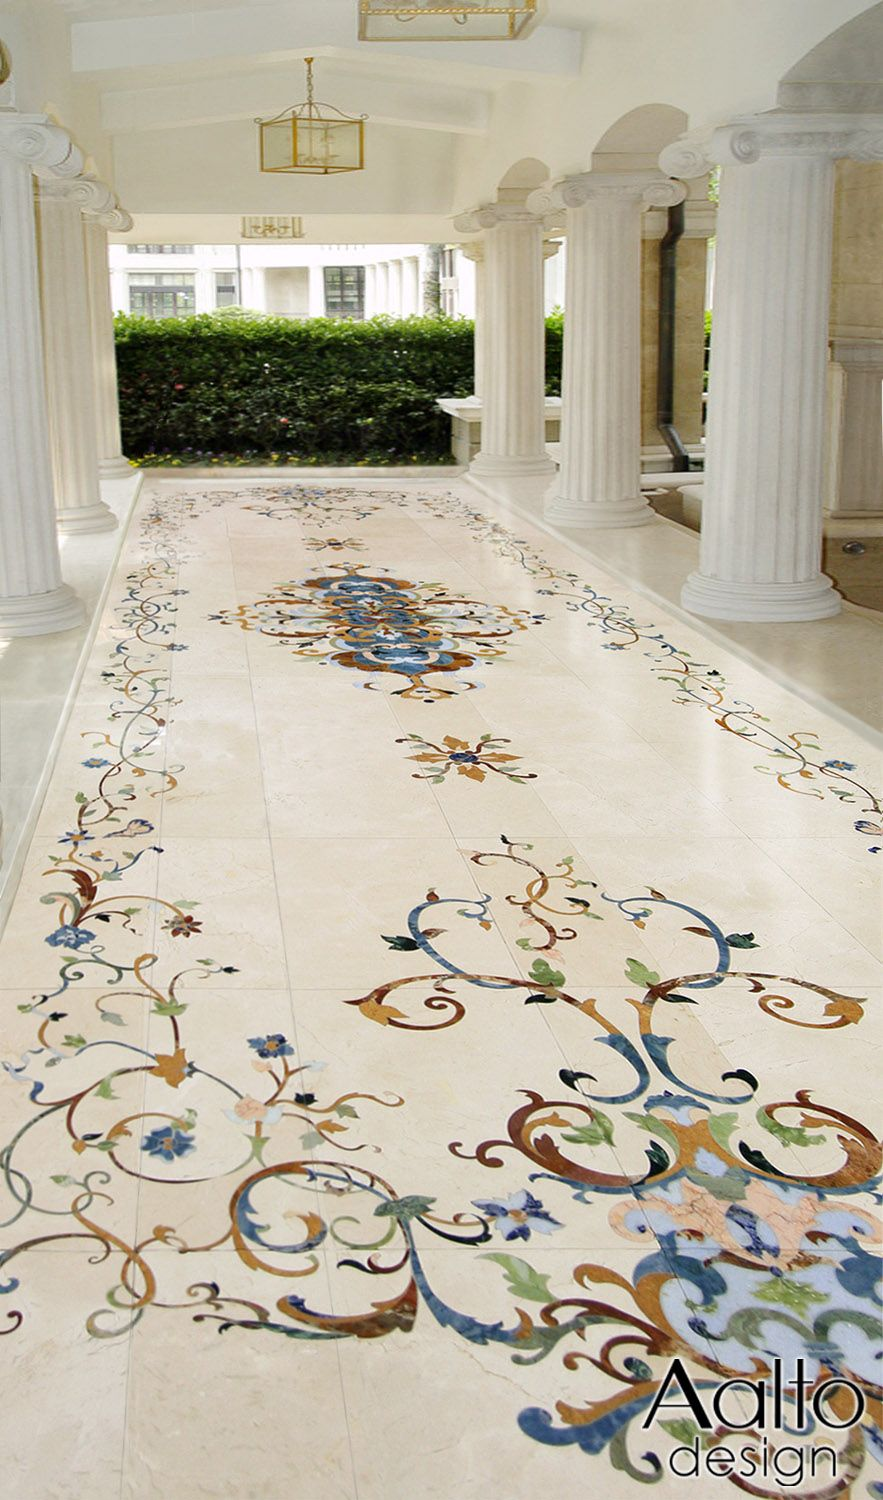 many people donu0027t realize that marble can be used in many outdoor situations